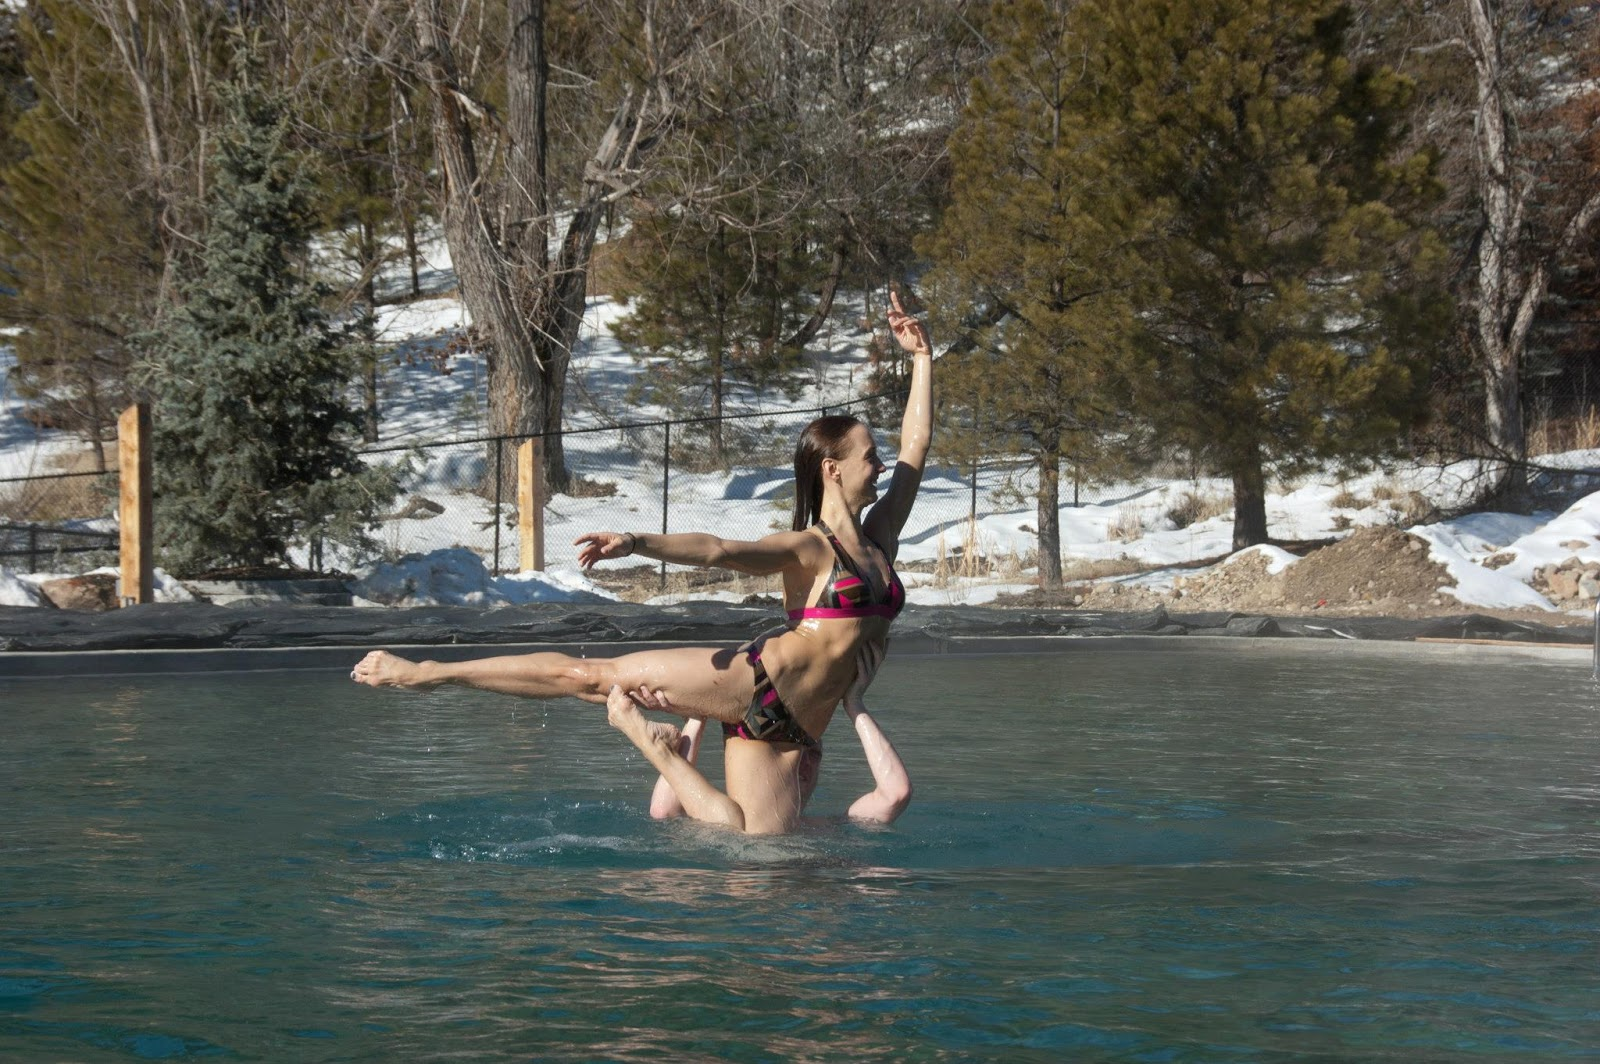 idaho springs city pool opens in Idaho City;